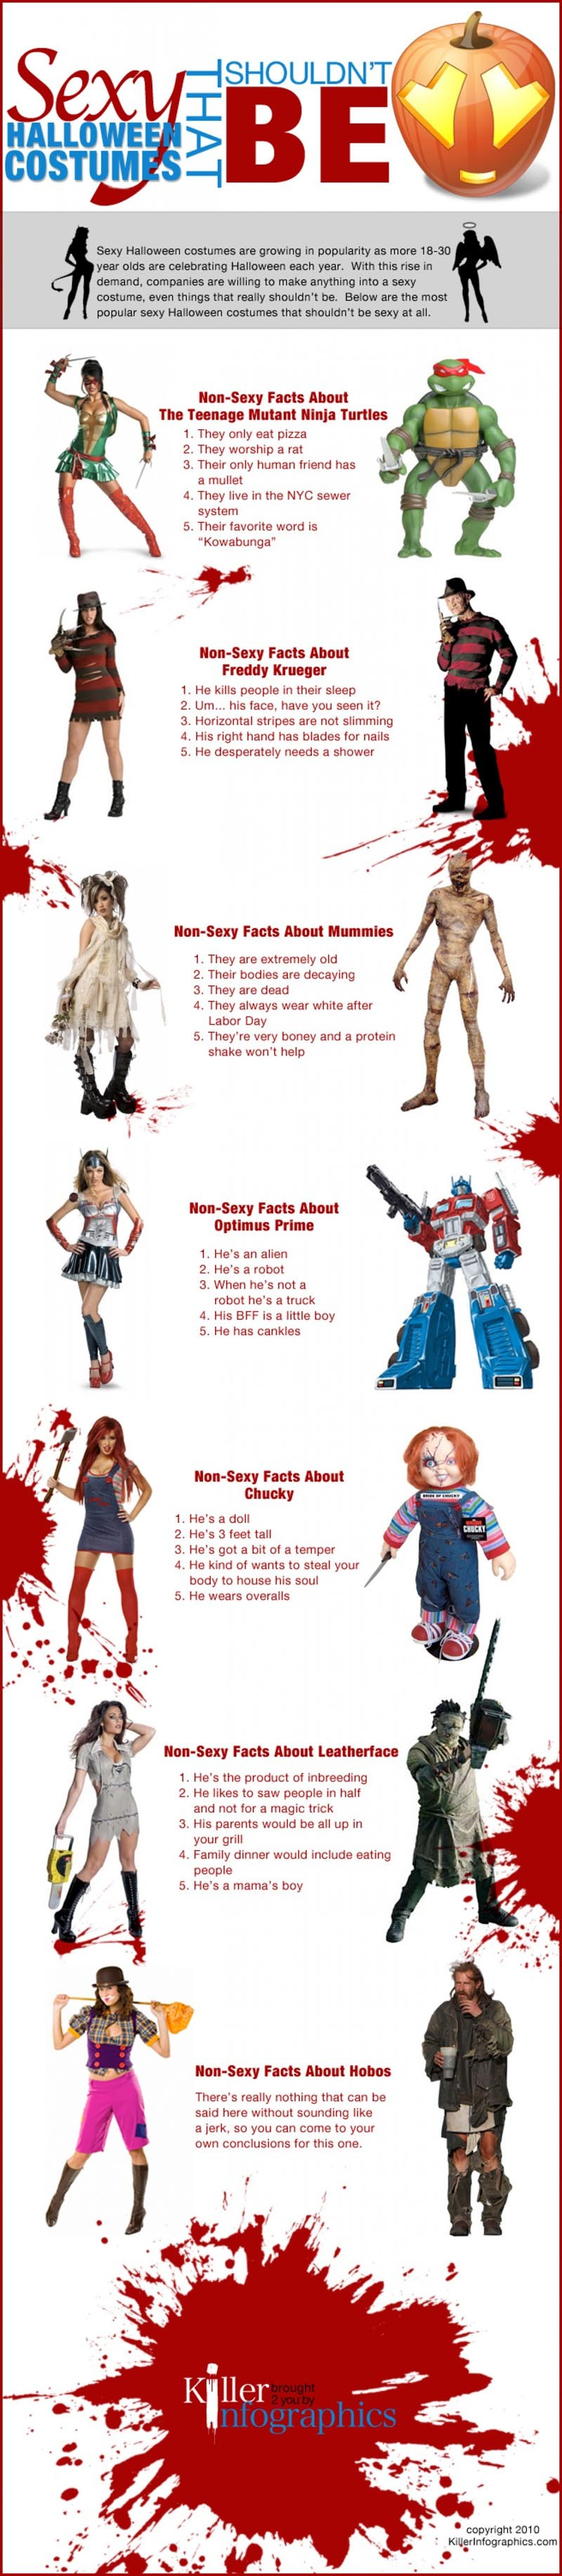 Sexy Halloween Costumes That Shouldn't Be [Infographic]